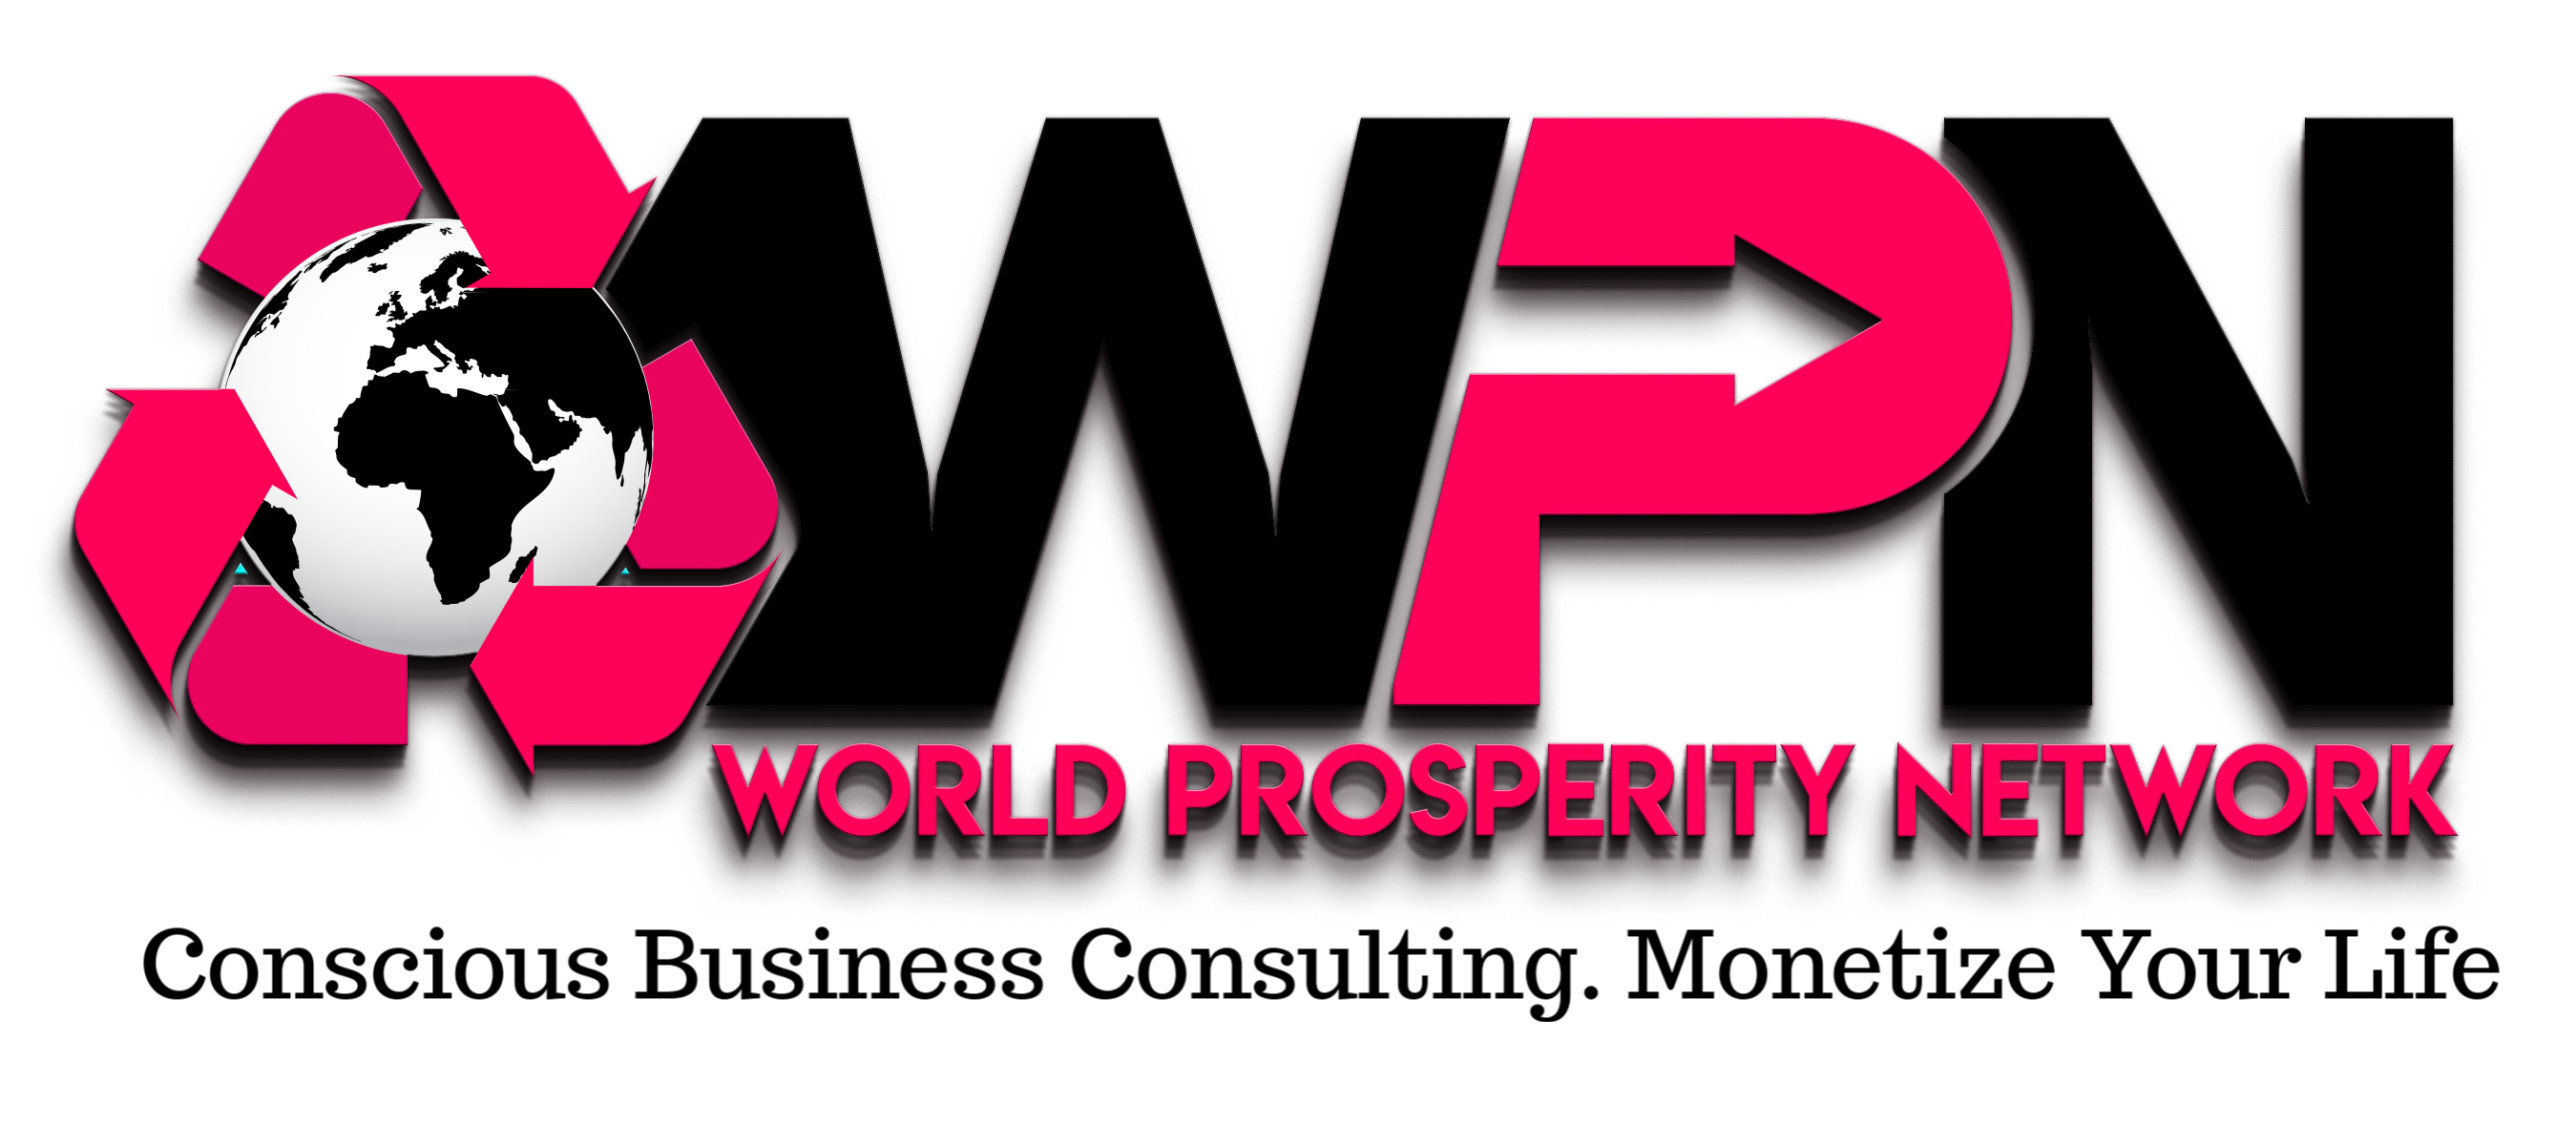 World Prosperity Network - Maximize Your ROI and Improve Your Life - 100x